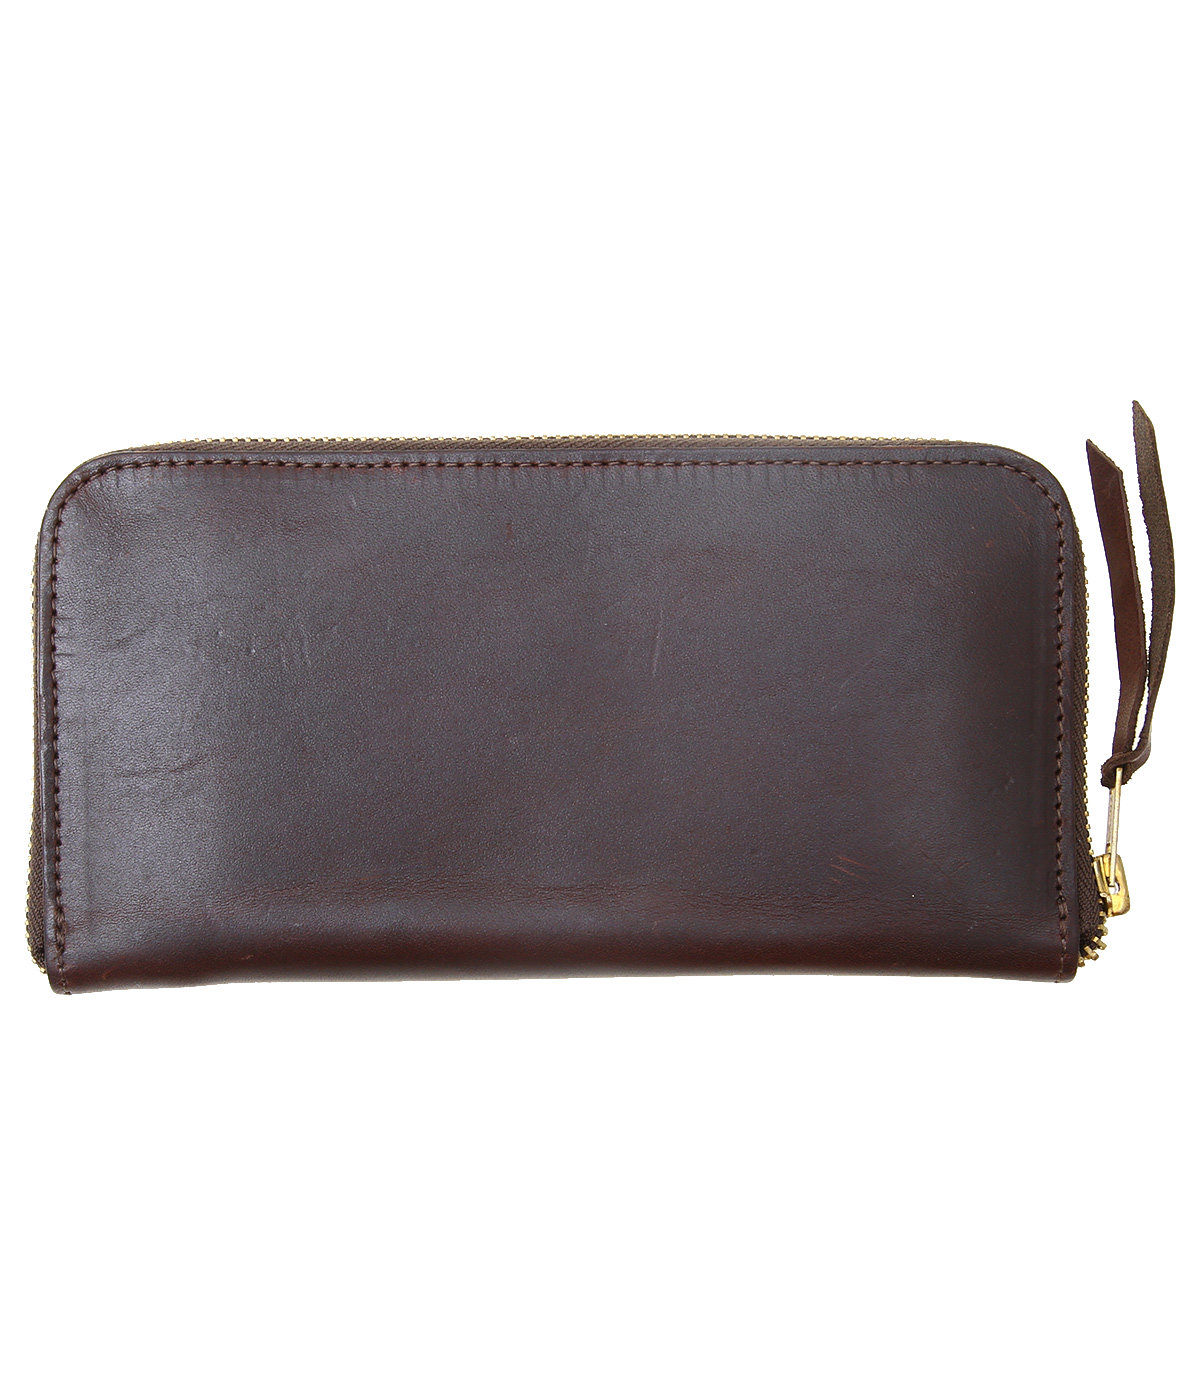 ZIPPER LARGE 25 UMBRELLA WALLET